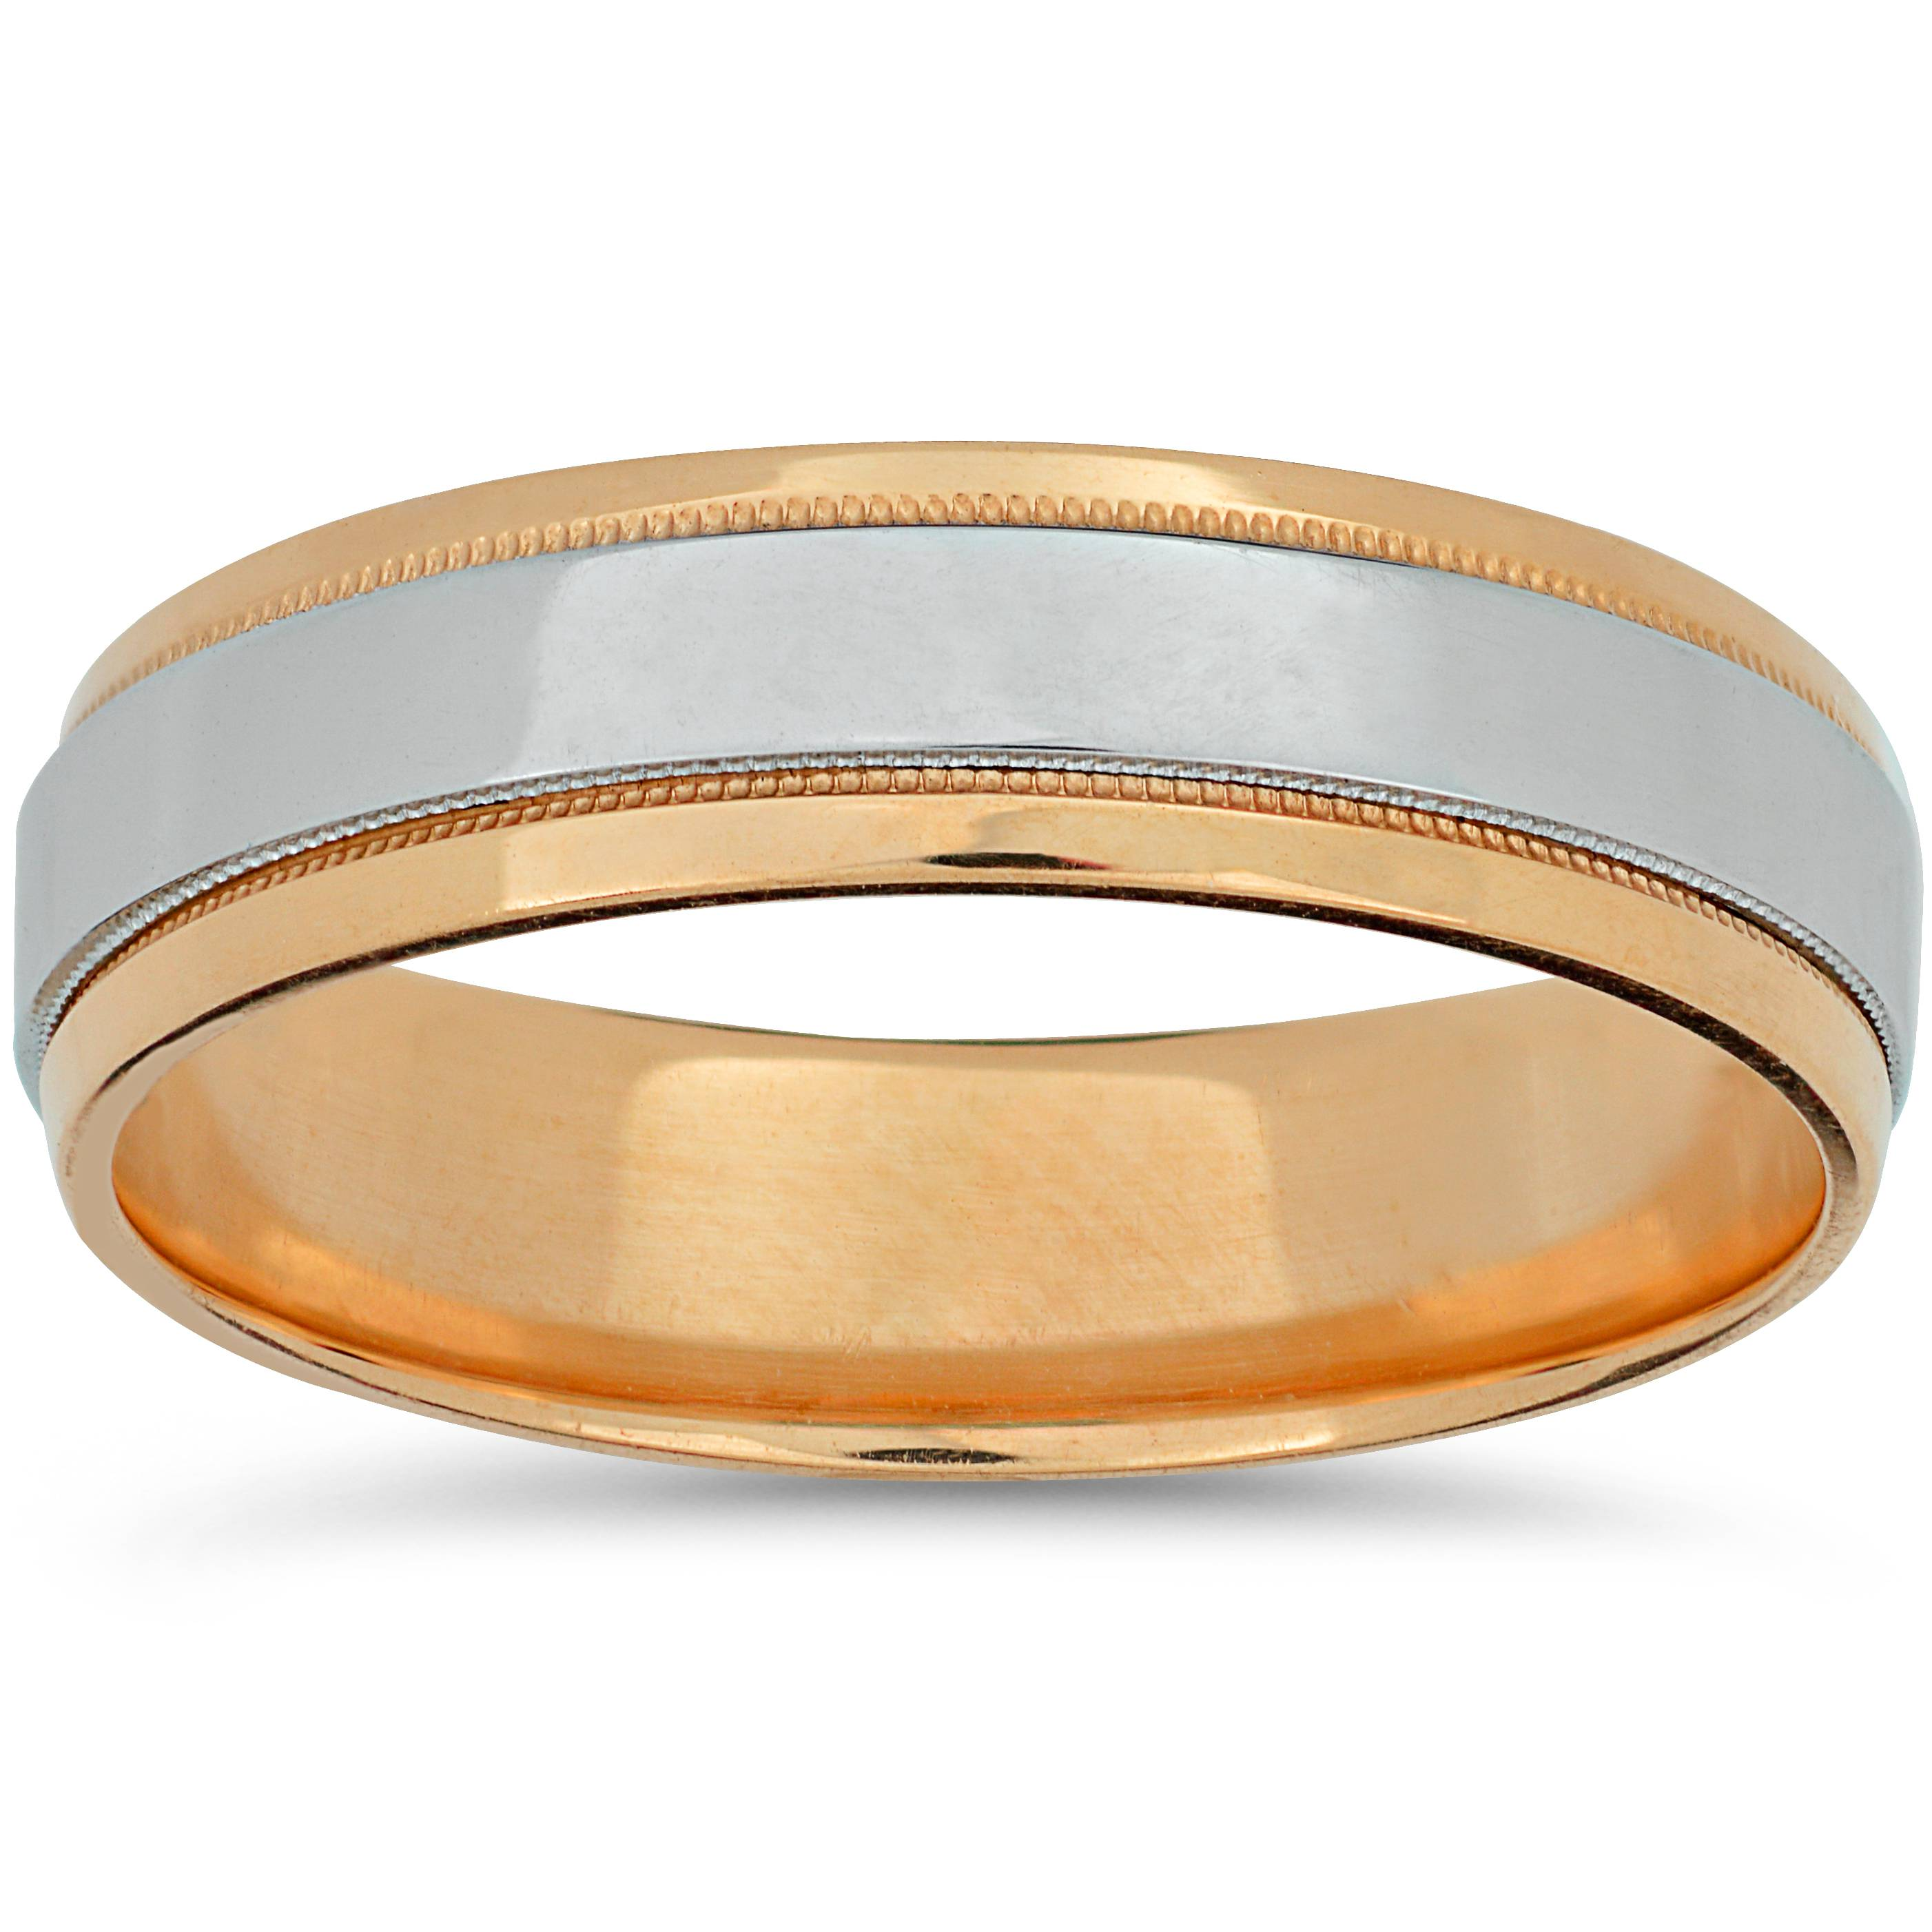 Platinum Amp Rose Gold Two Tone Wedding Band Mens 14k High Polished Plain Ring